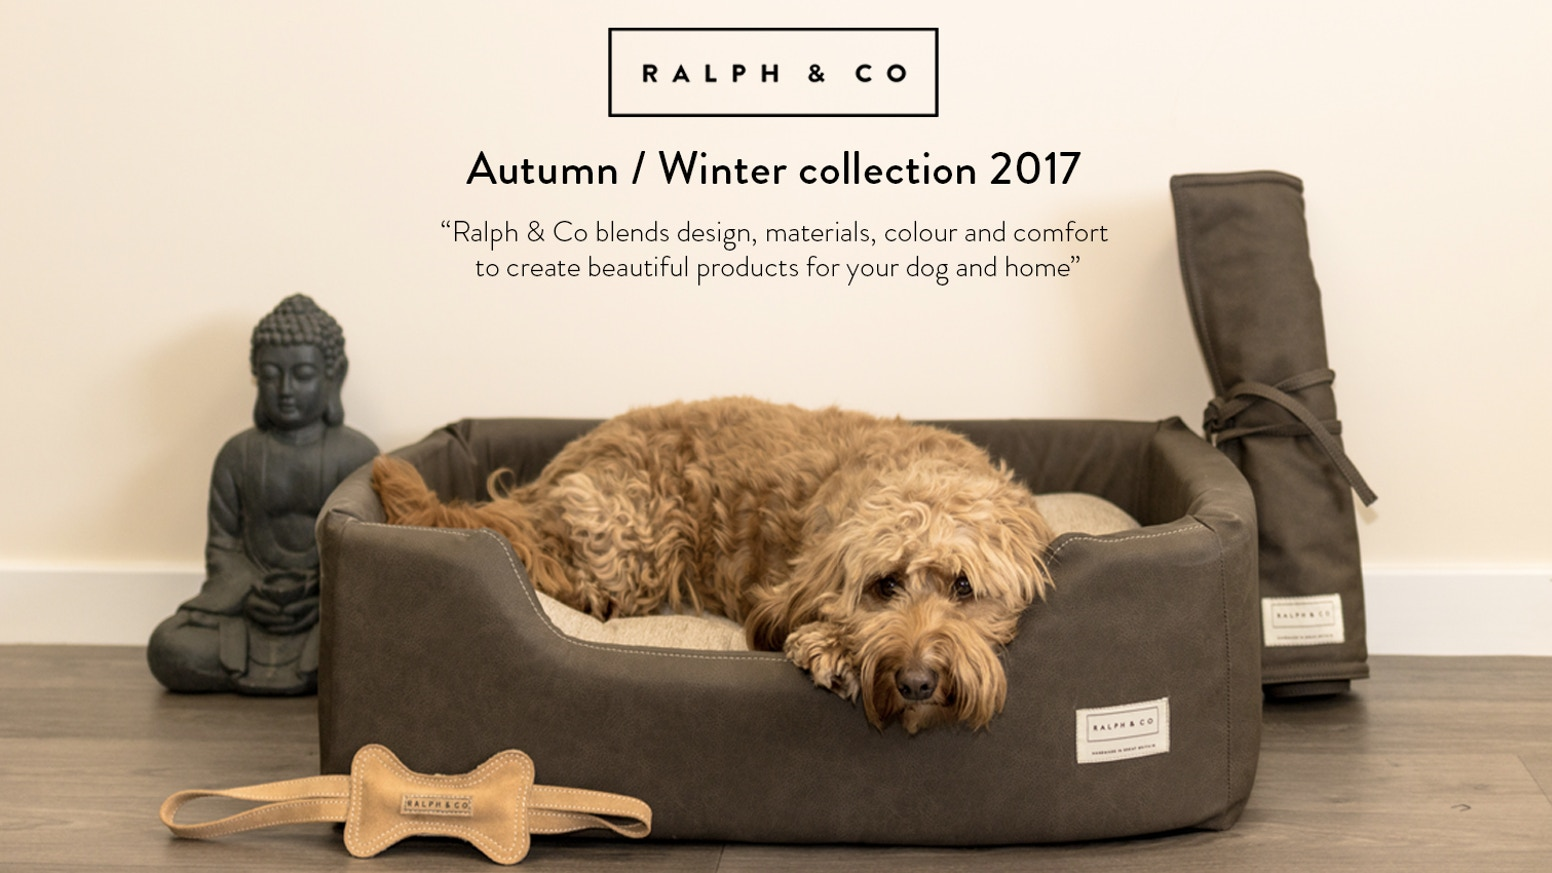 Ralph & Co - Premium dog beds, collars, leads & blankets